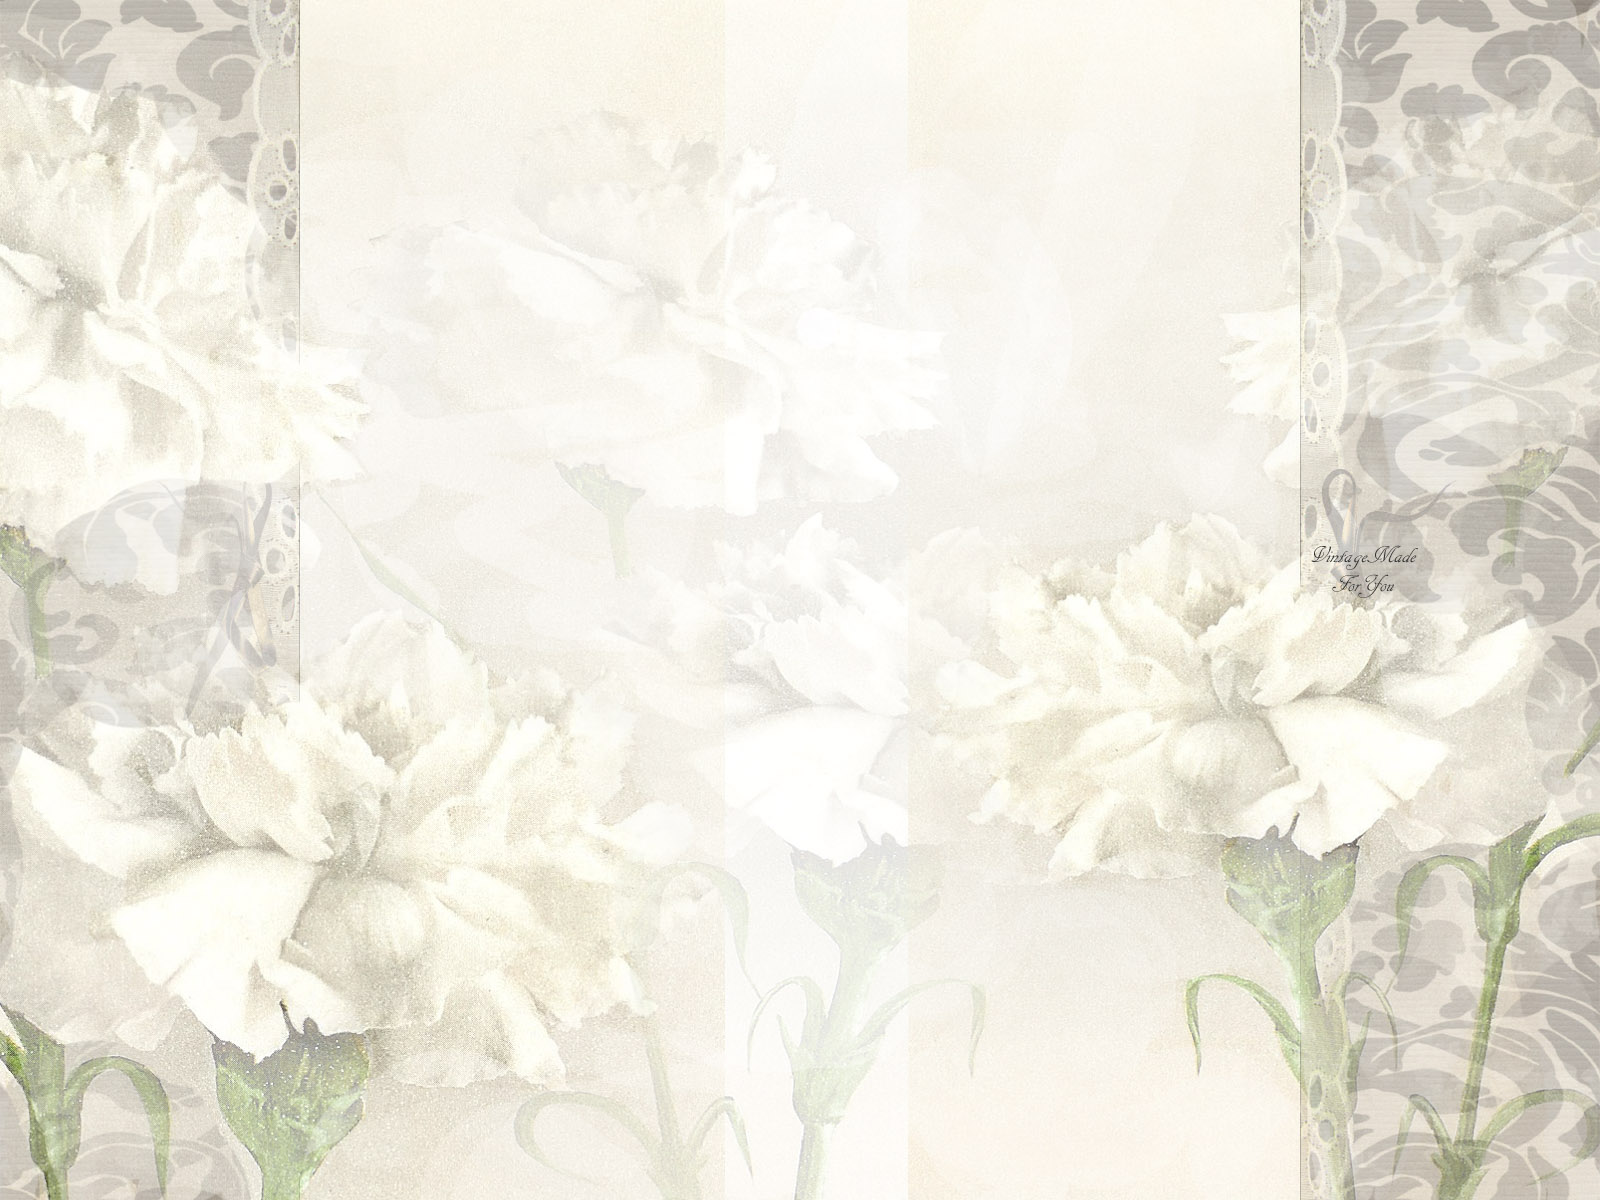 Vintagemadeforyou free background to blogger 2 and 3 columns white vintagemadeforyou free background to blogger 2 and 3 columns white flowers mightylinksfo